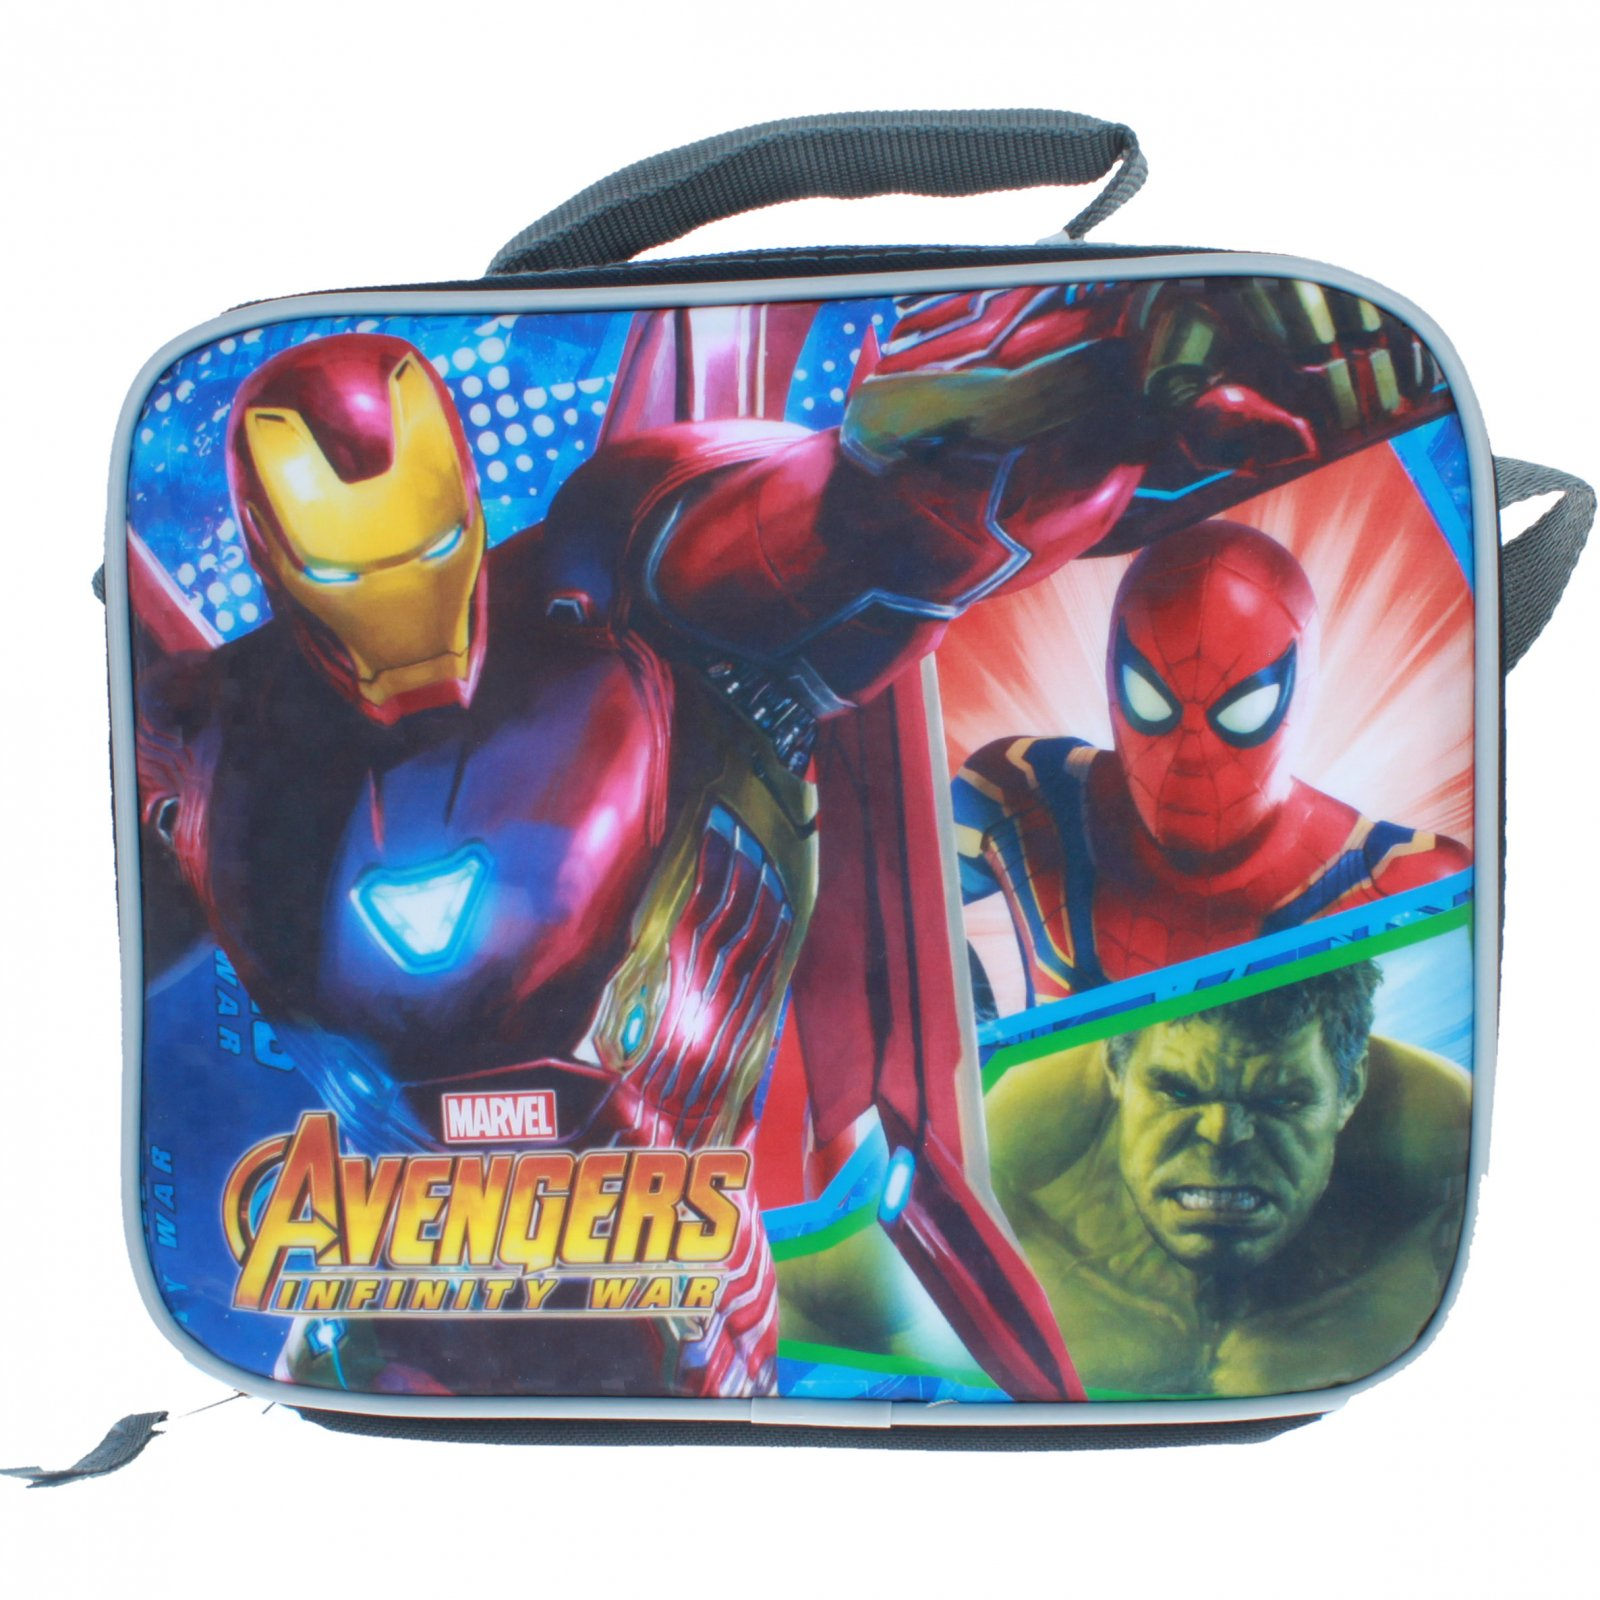 Disney Marvel Avengers Infinity War Graphic Lunch Bag